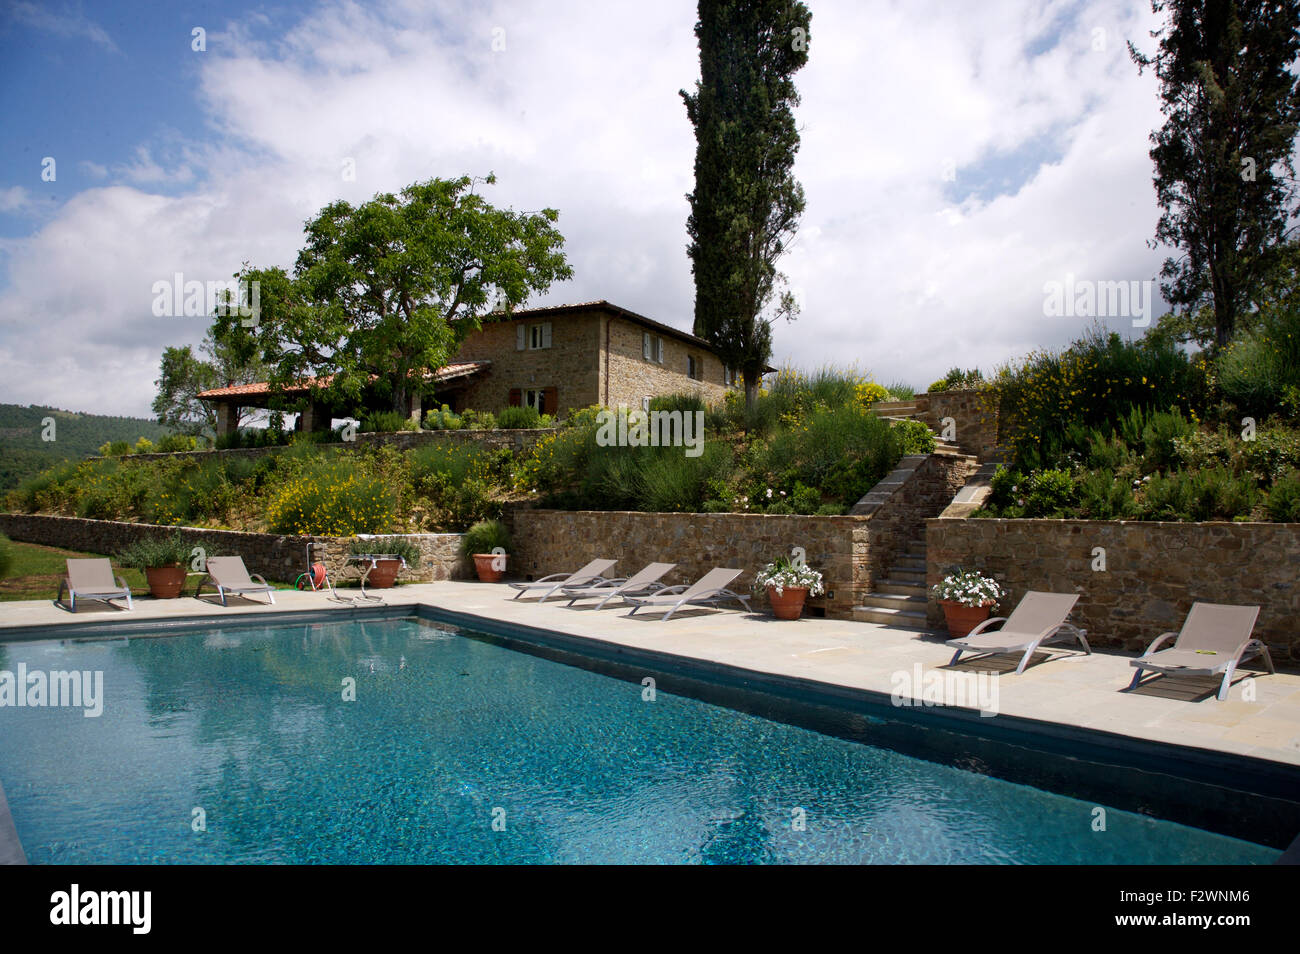 Loungers beside swimming pool in large italian country garden stock photo royalty free image for Large swimming pools for gardens